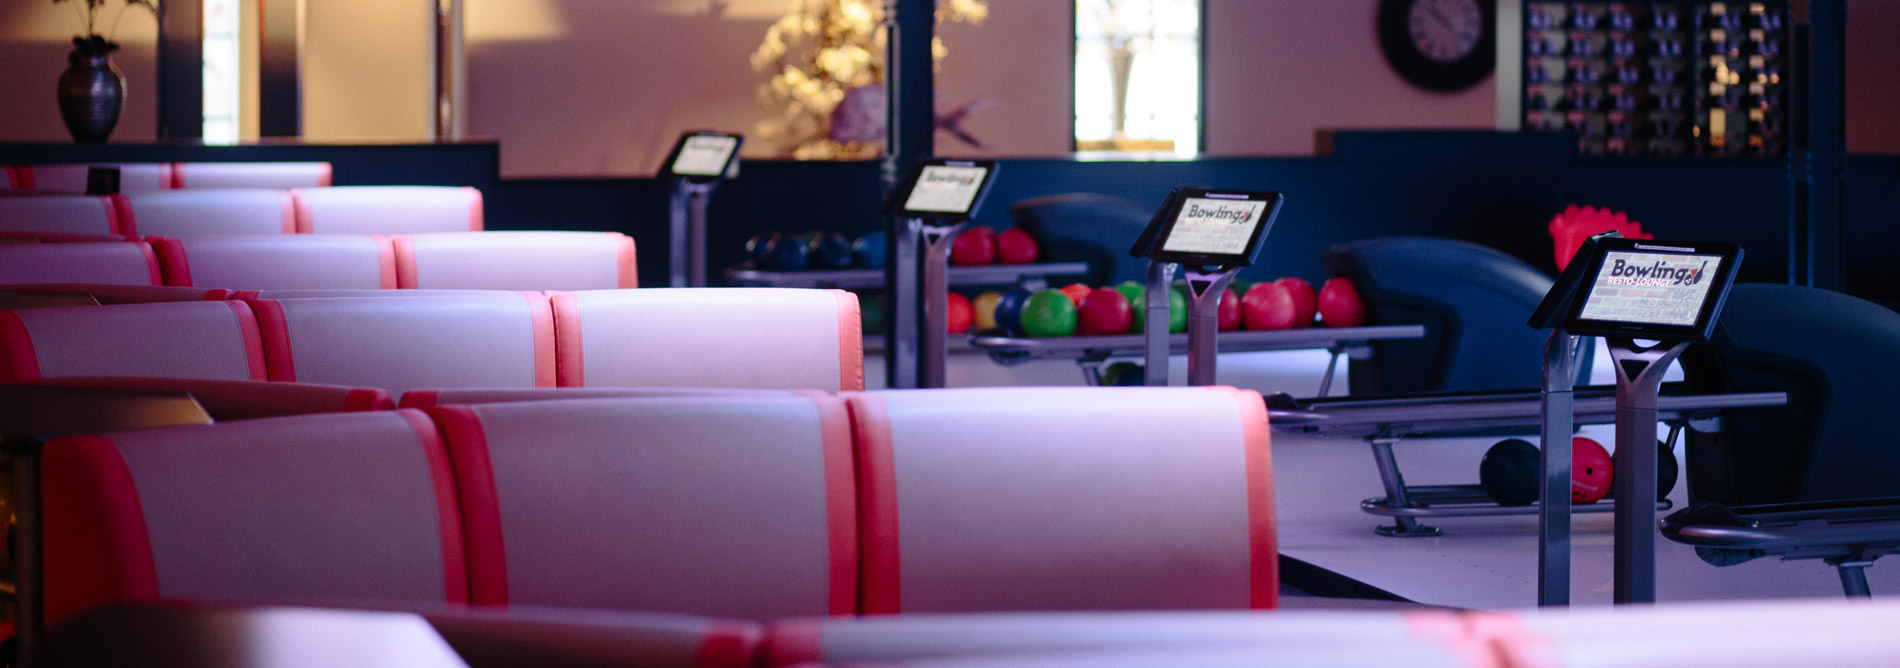 Bowling QubicaAMF Furniture Design Elements Harmony Center Needs